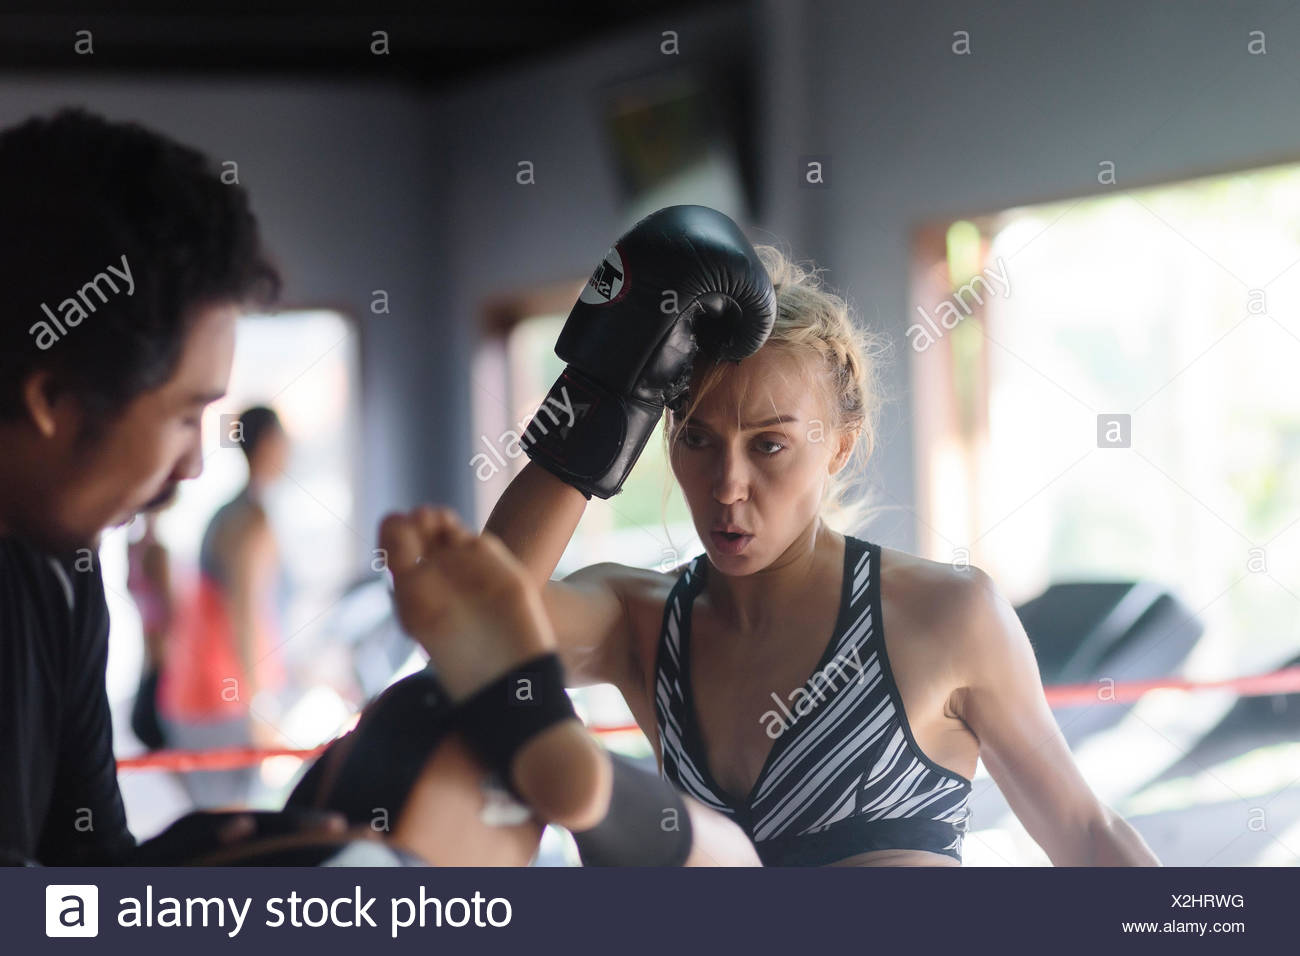 Young woman kicking while practicing kickboxing with coach, Seminyak, Bali, Indonesia - Stock Image